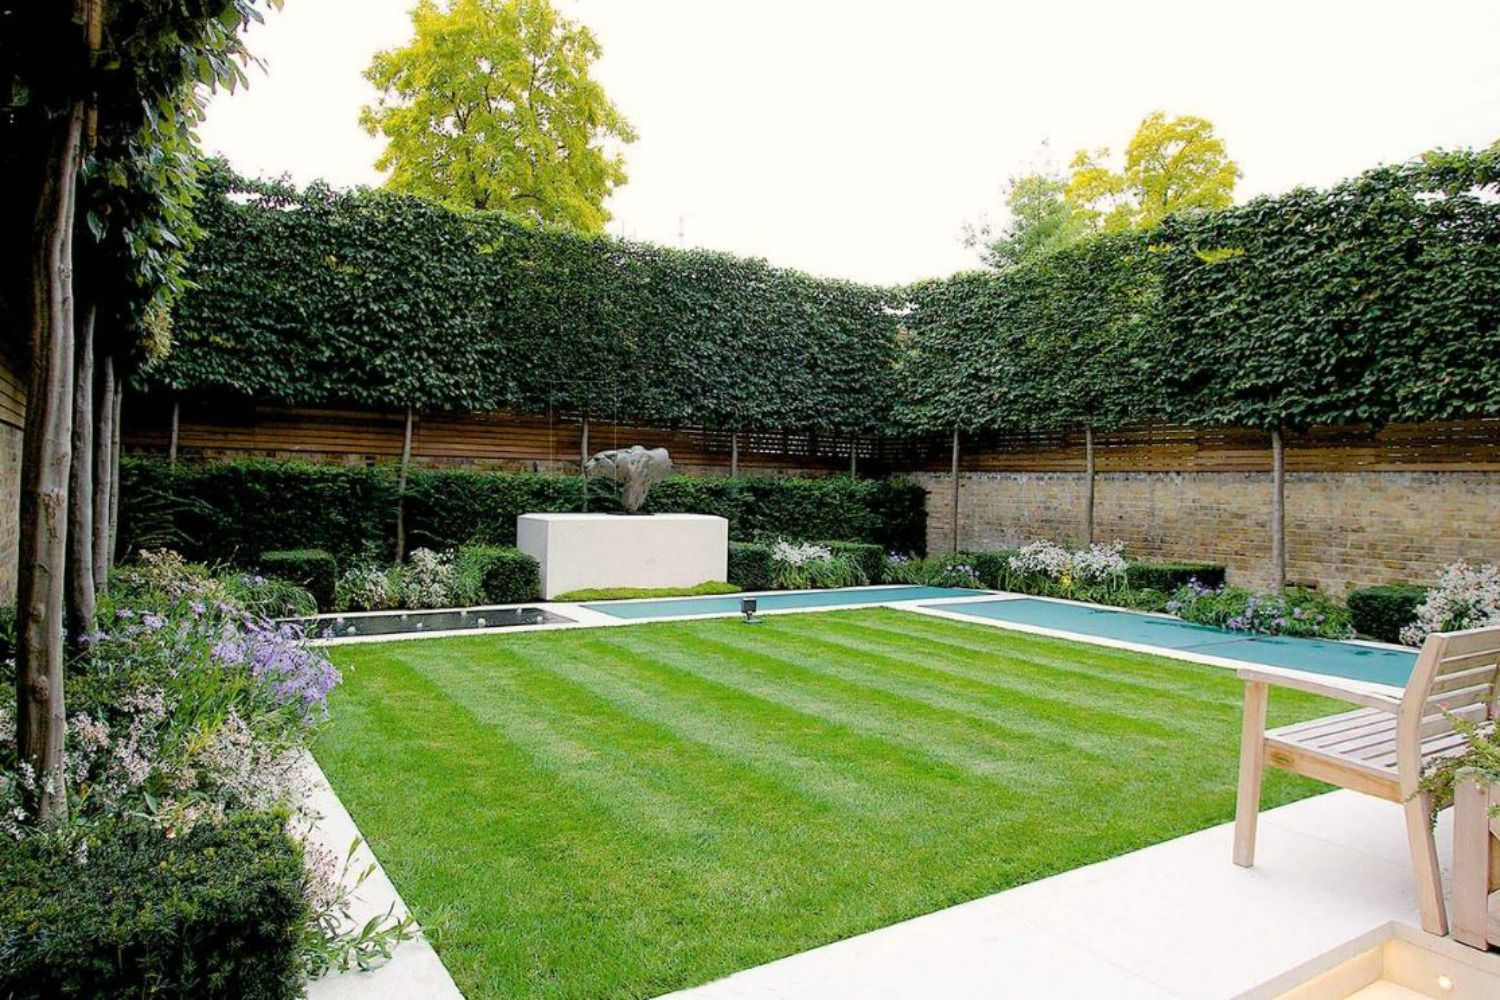 Choosing Privacy Fences Or Screens For Your Yard